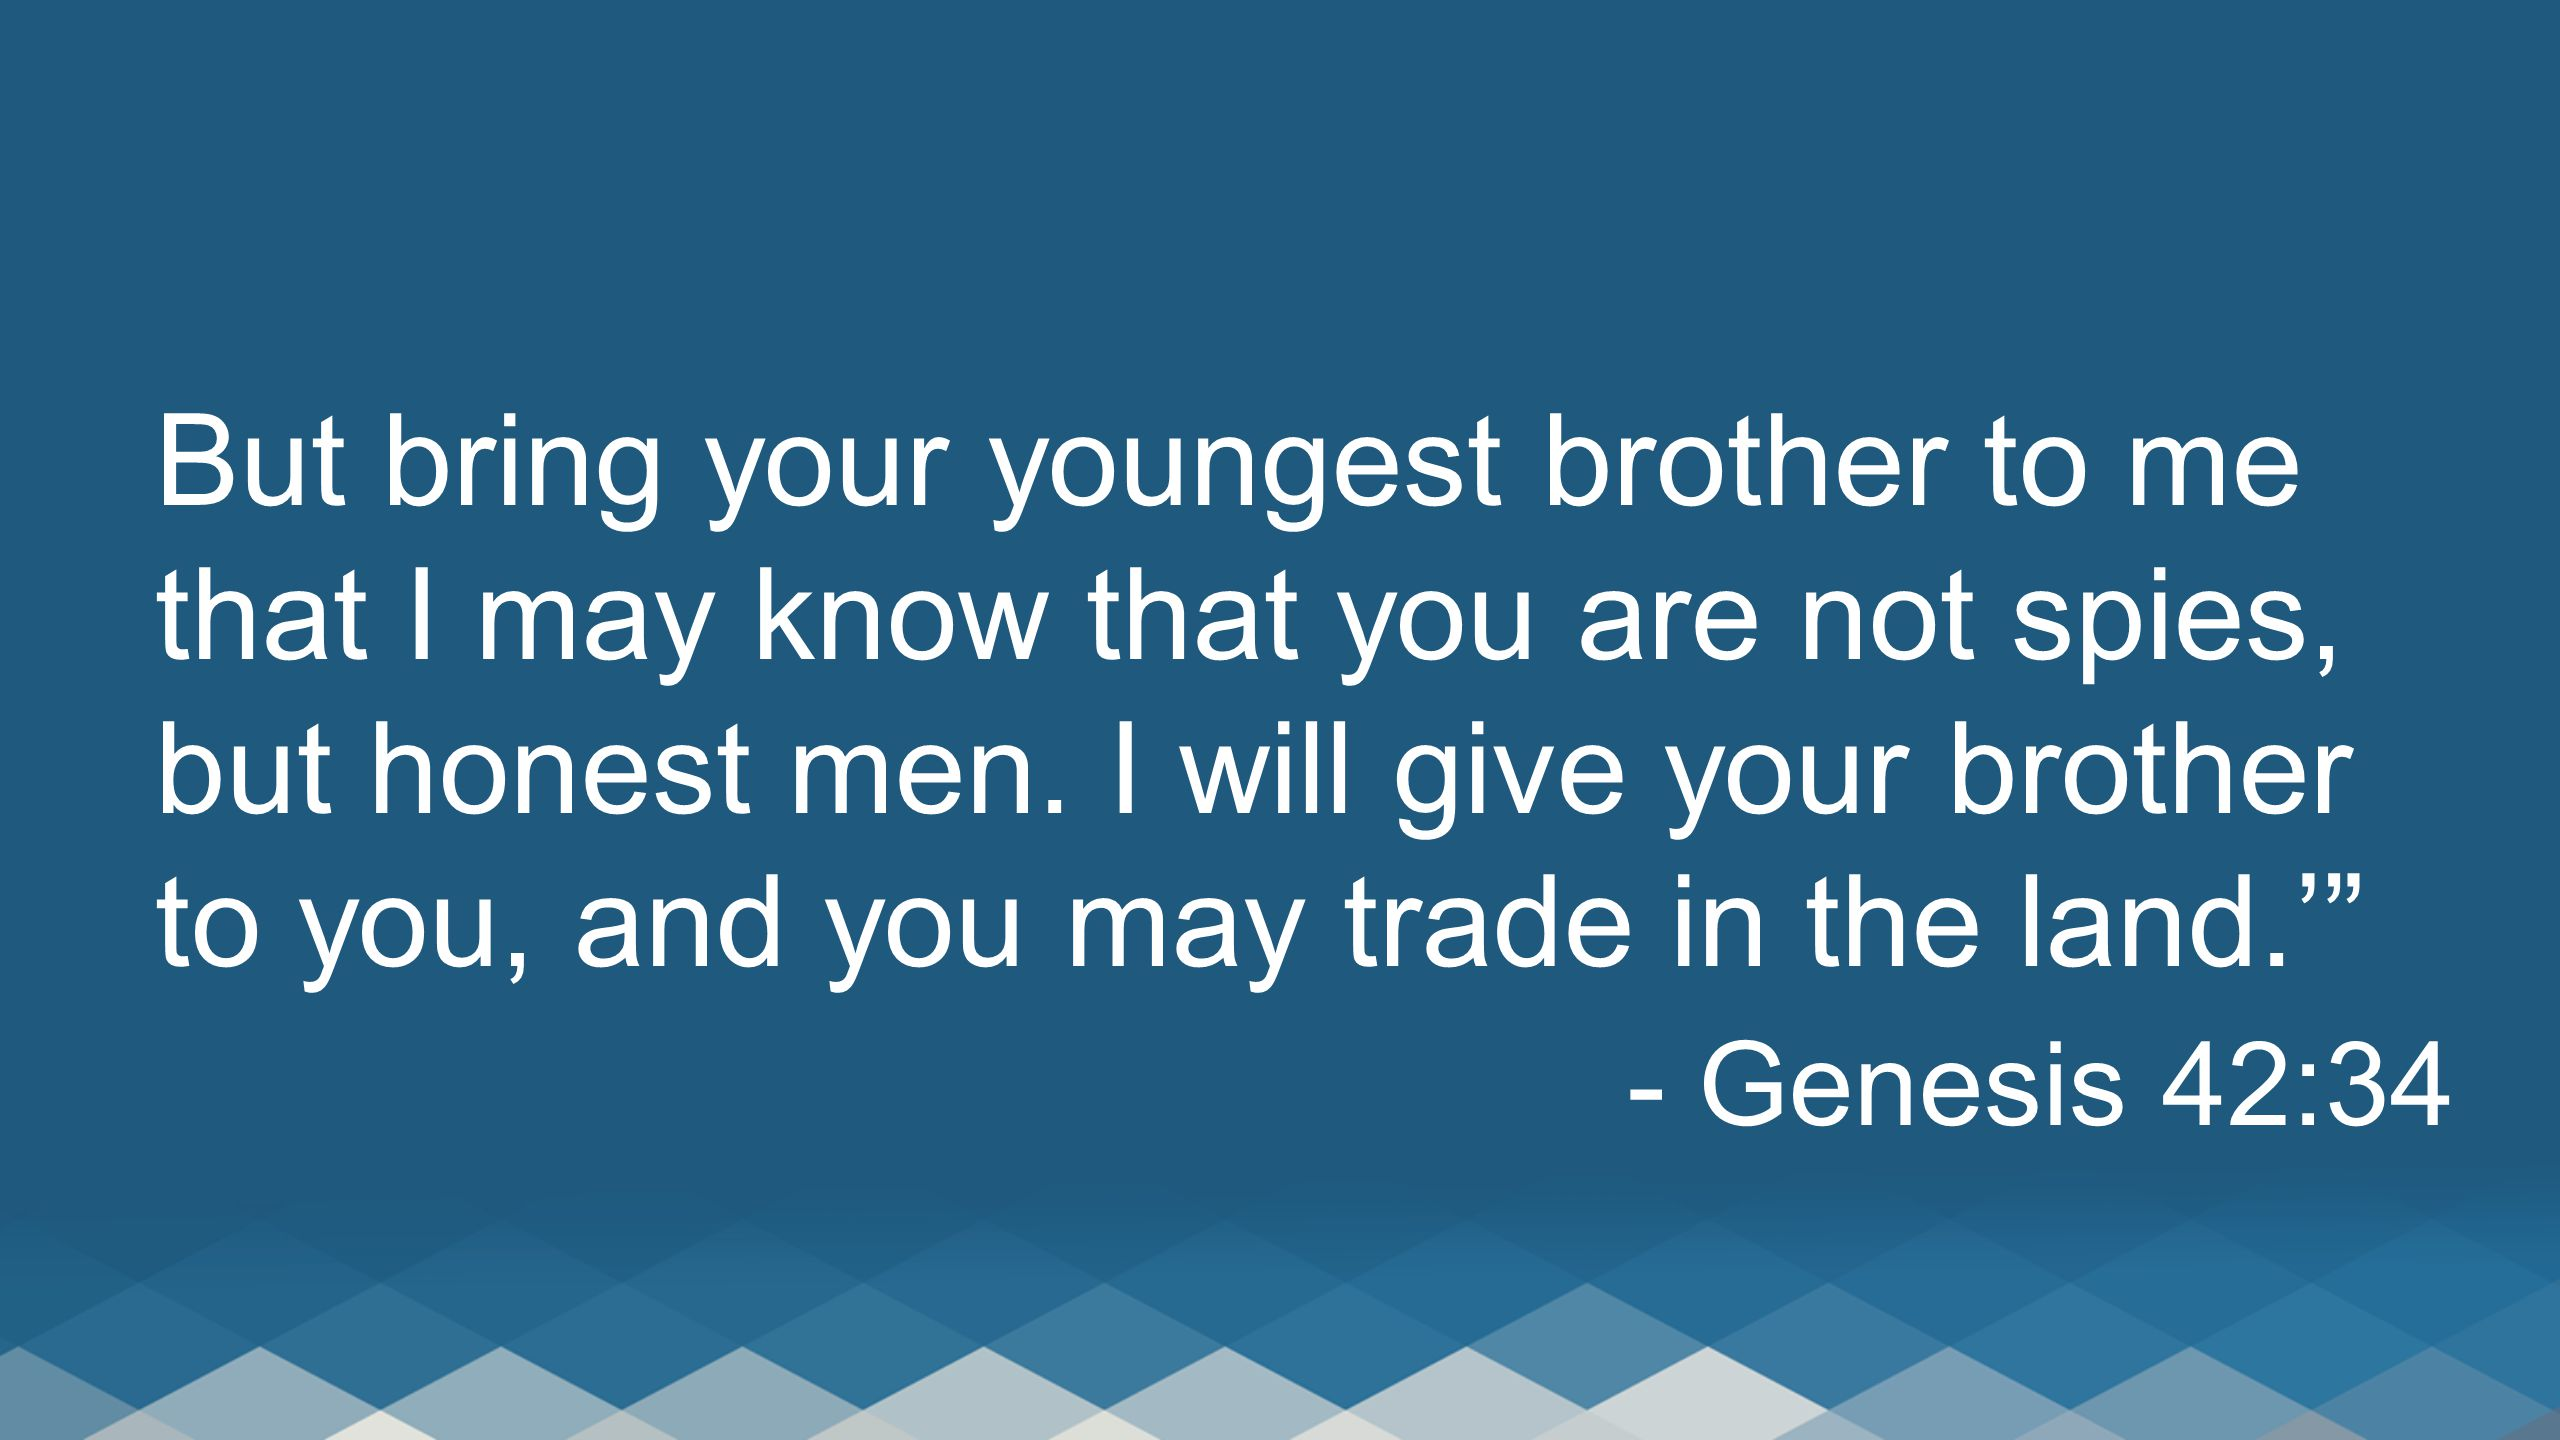 But bring your youngest brother to me that I may know that you are not spies, but honest men. I will give your brother to you, and you may trade in the land.'